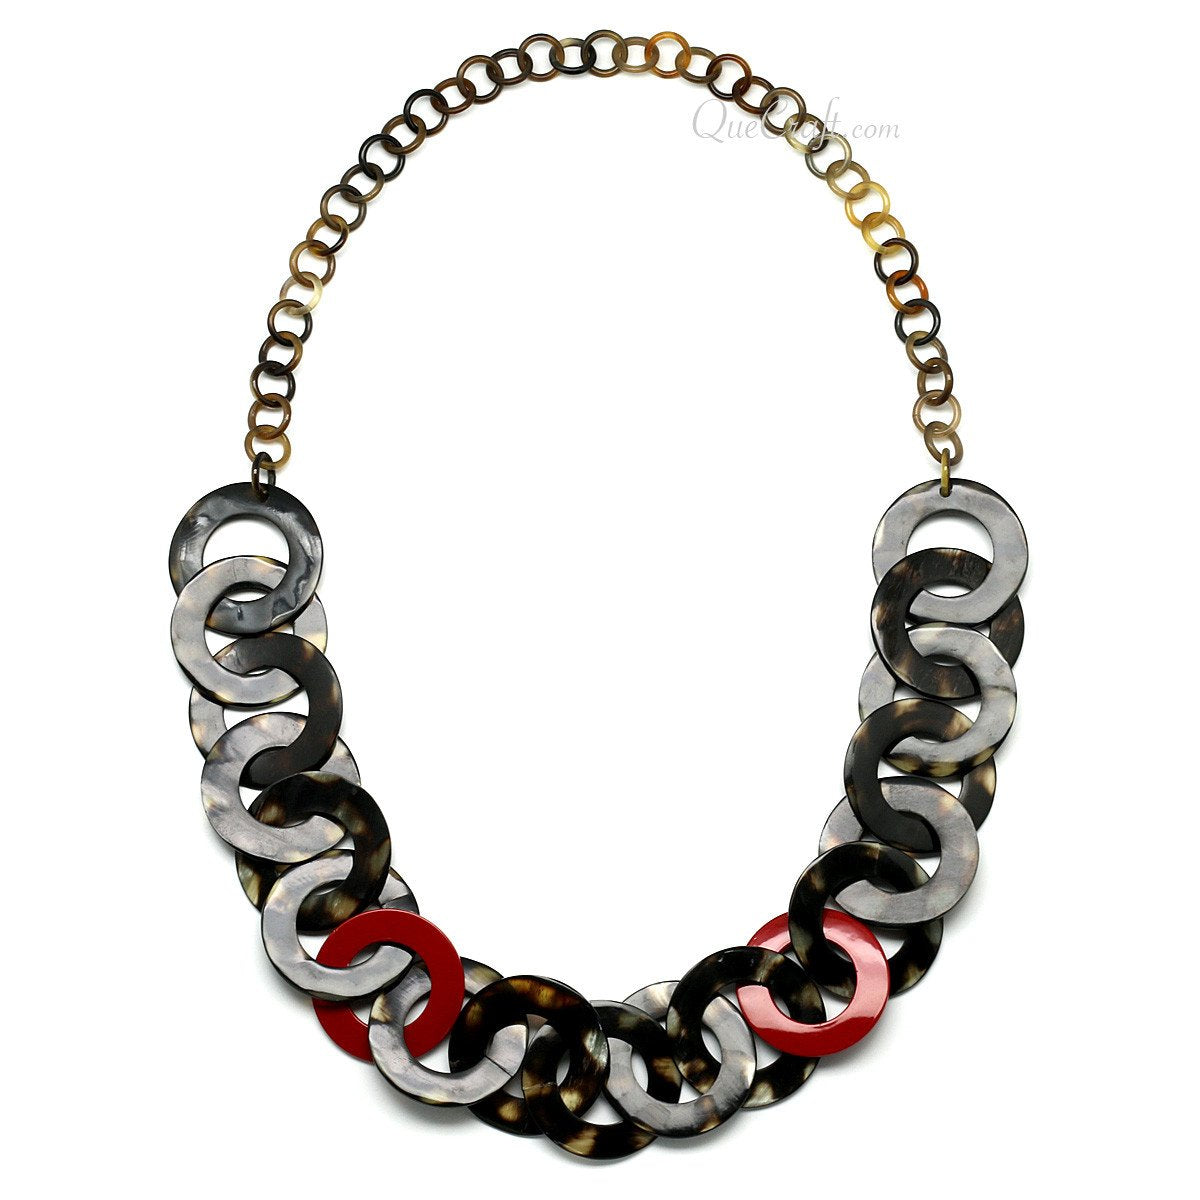 Horn & Lacquer Chain Necklace #11279 - HORN.JEWELRY by QueCraft